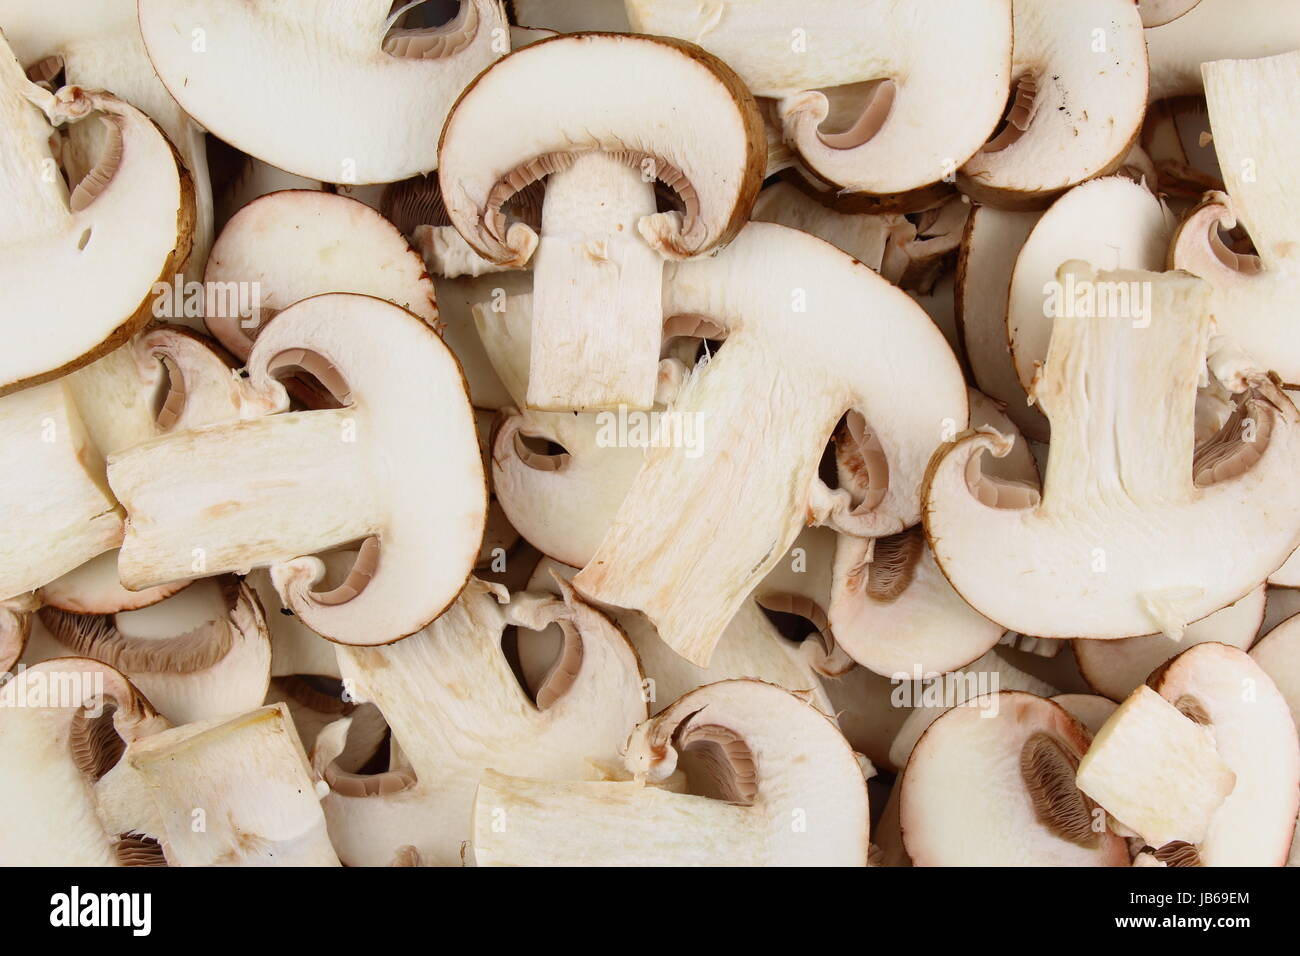 fresh mushroom slices as a food background texture - Stock Image